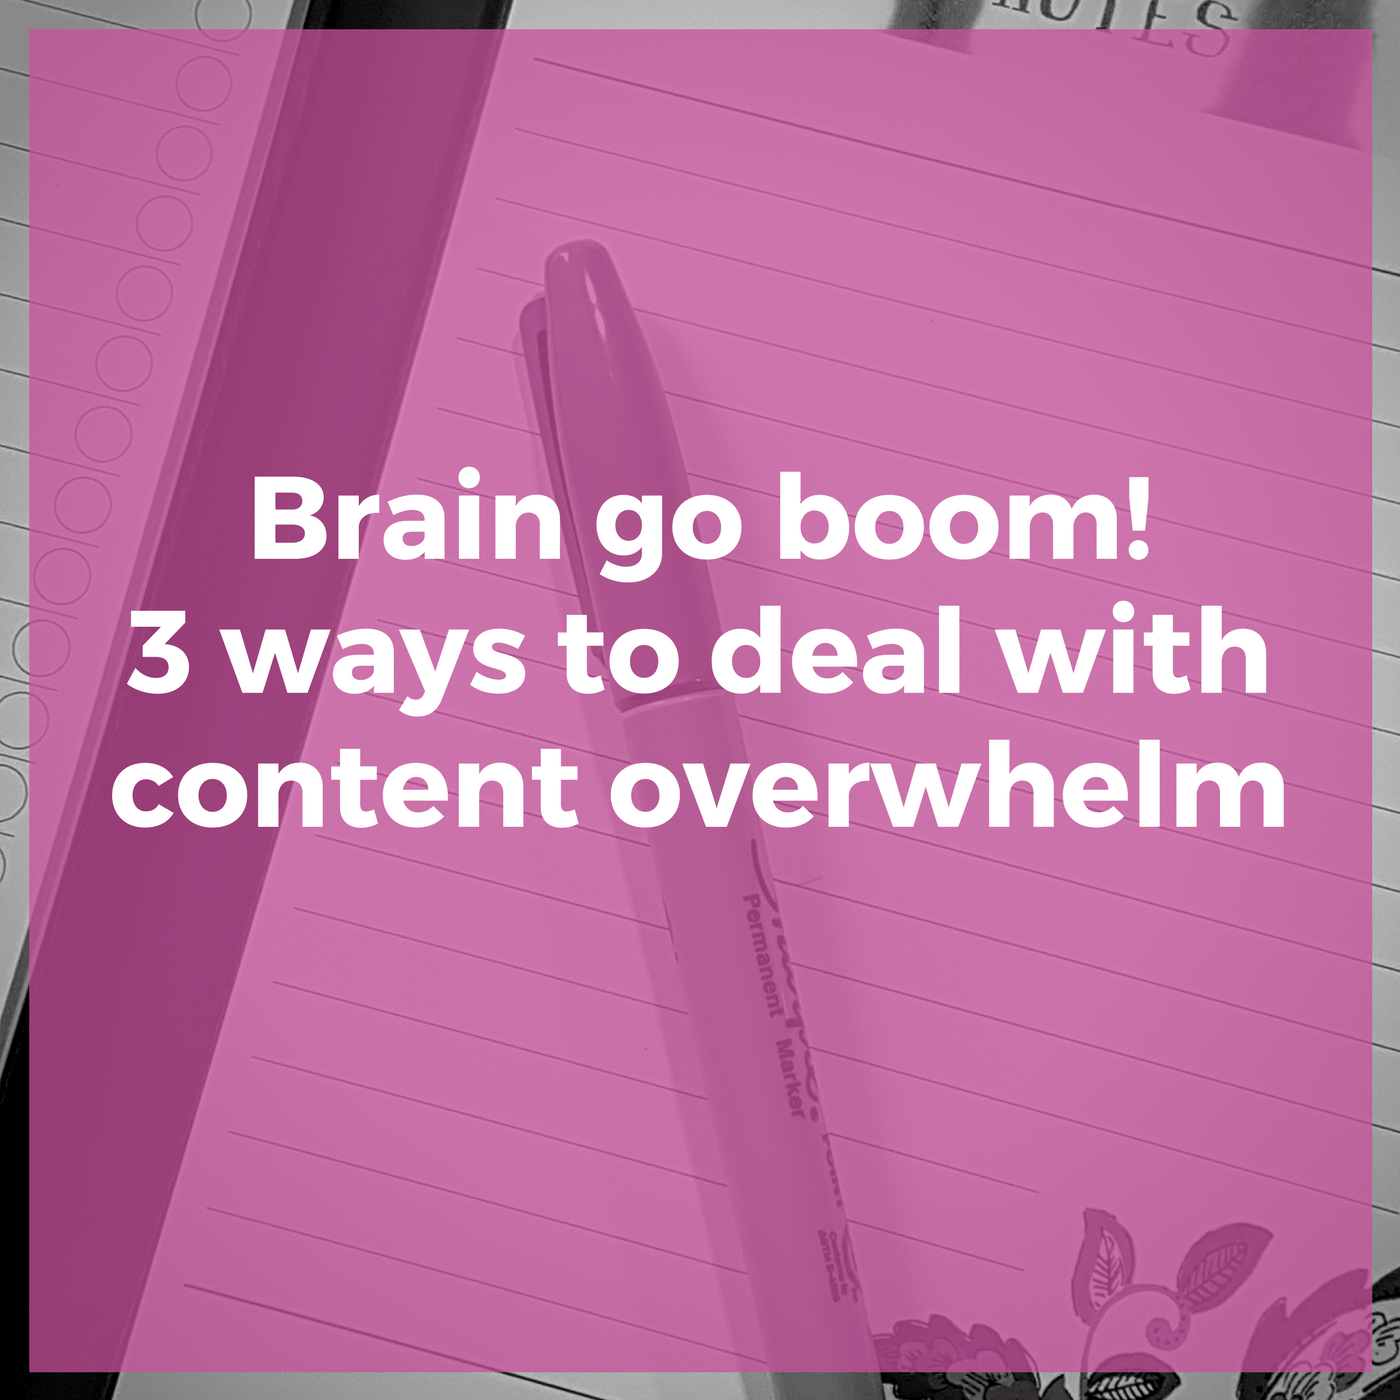 Brain go boom! 3 ways to deal with content overwhelm